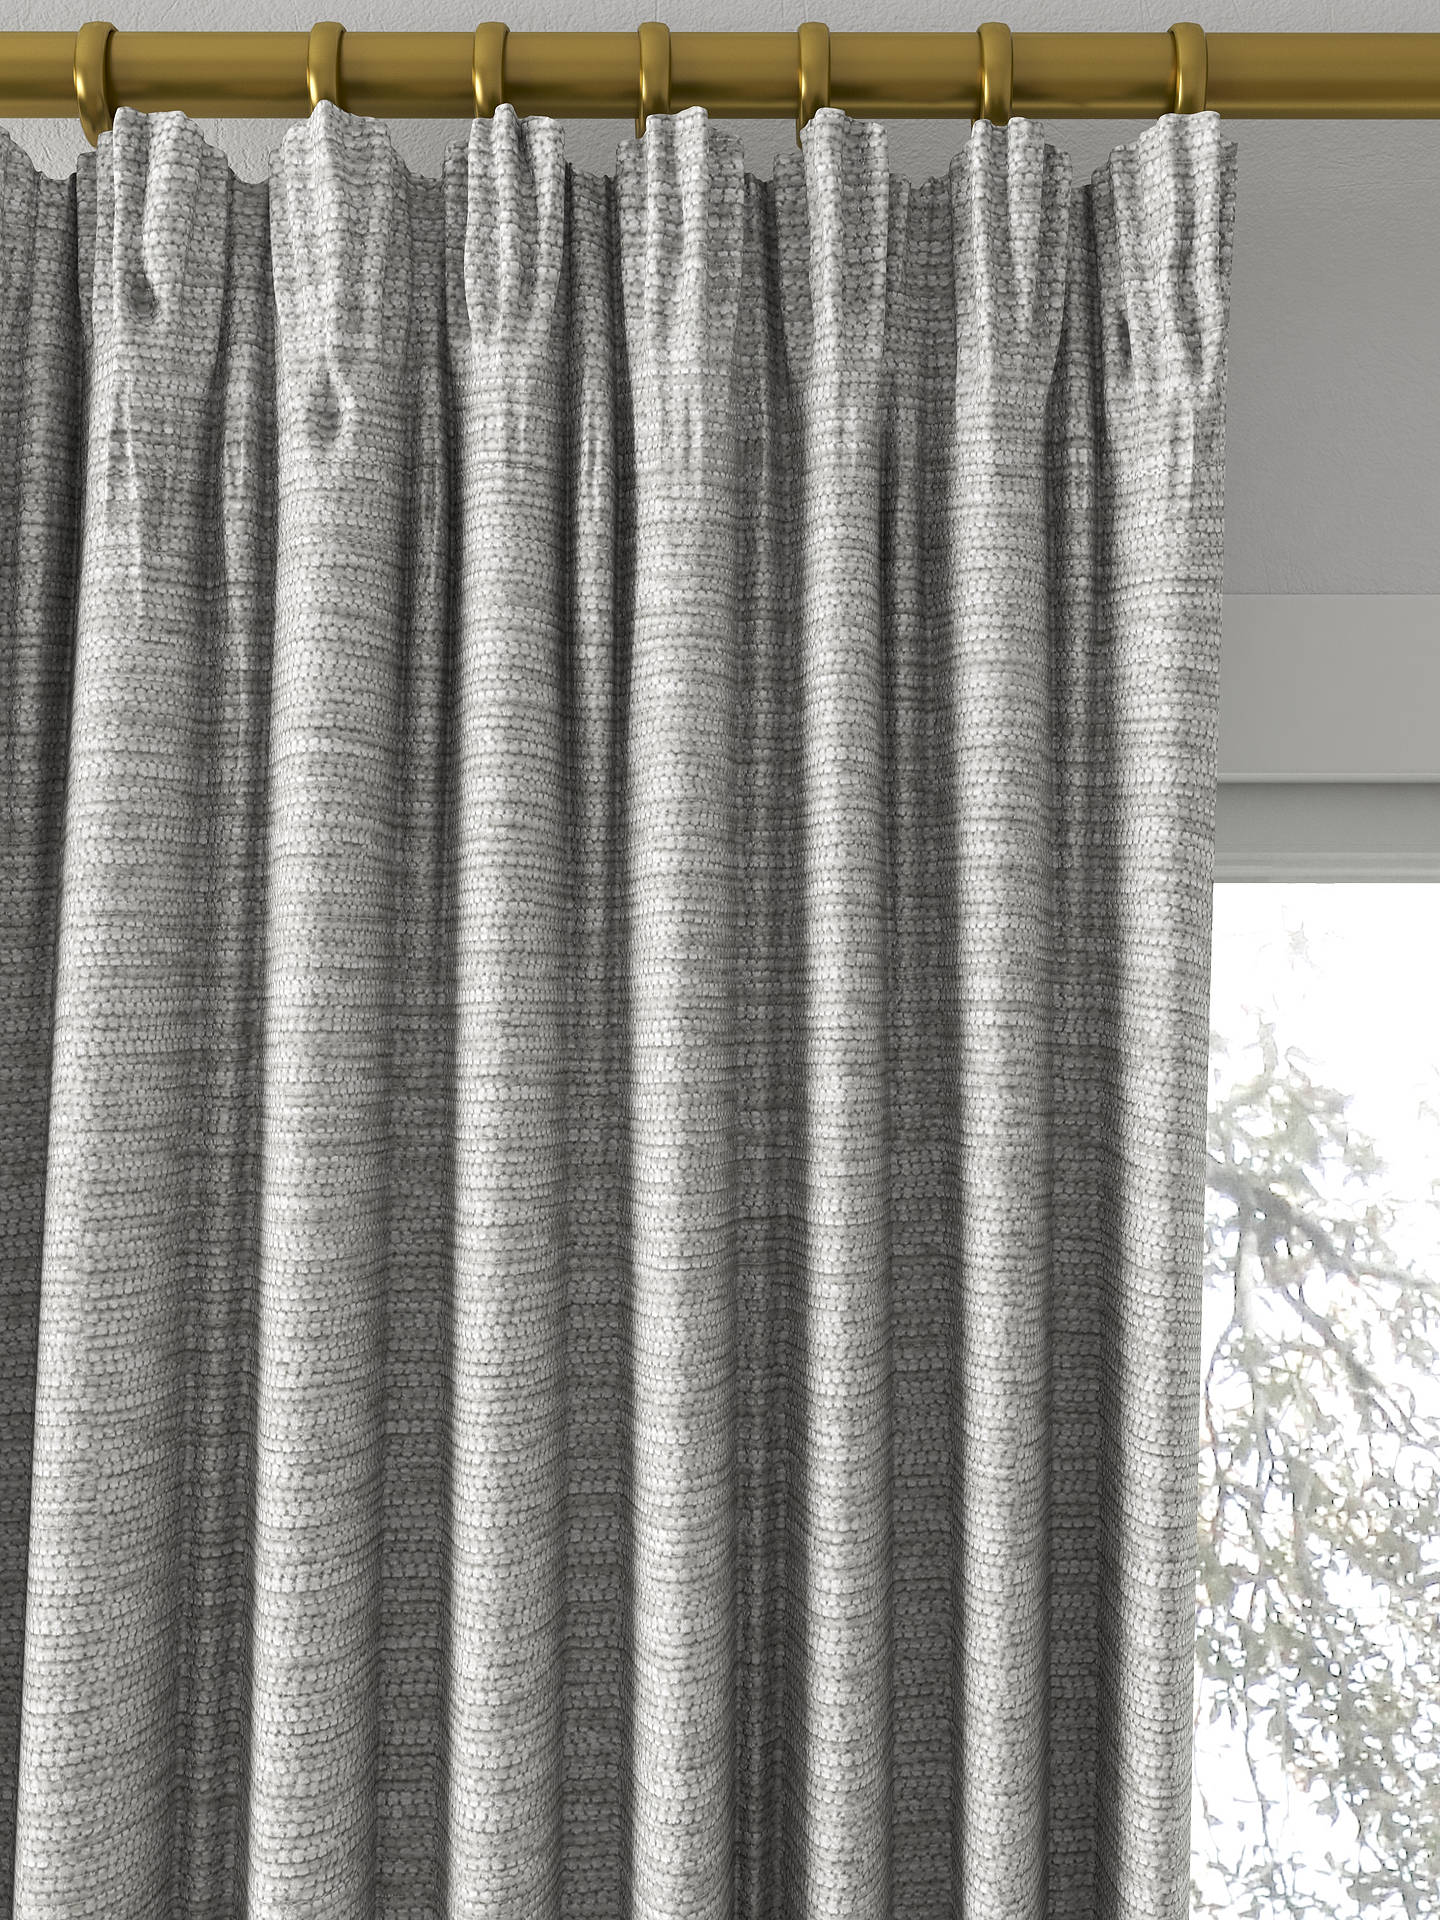 Buy john lewis partners zambia made to measure curtains silver online at johnlewis